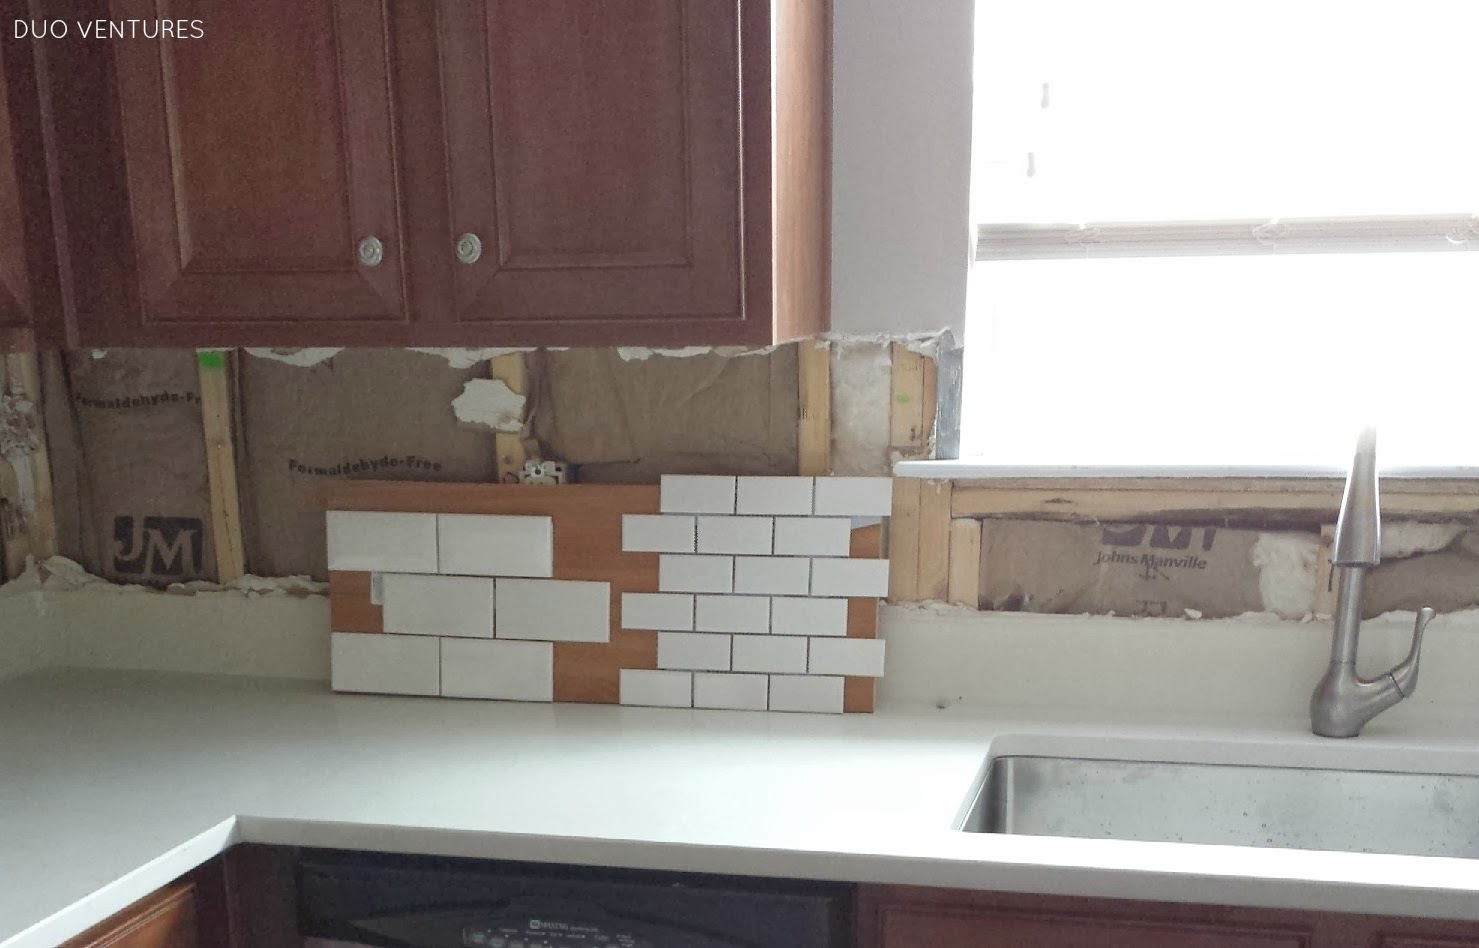 Large Tile Kitchen Backsplash Duo Ventures Kitchen Makeover Subway Tile Backsplash Installation